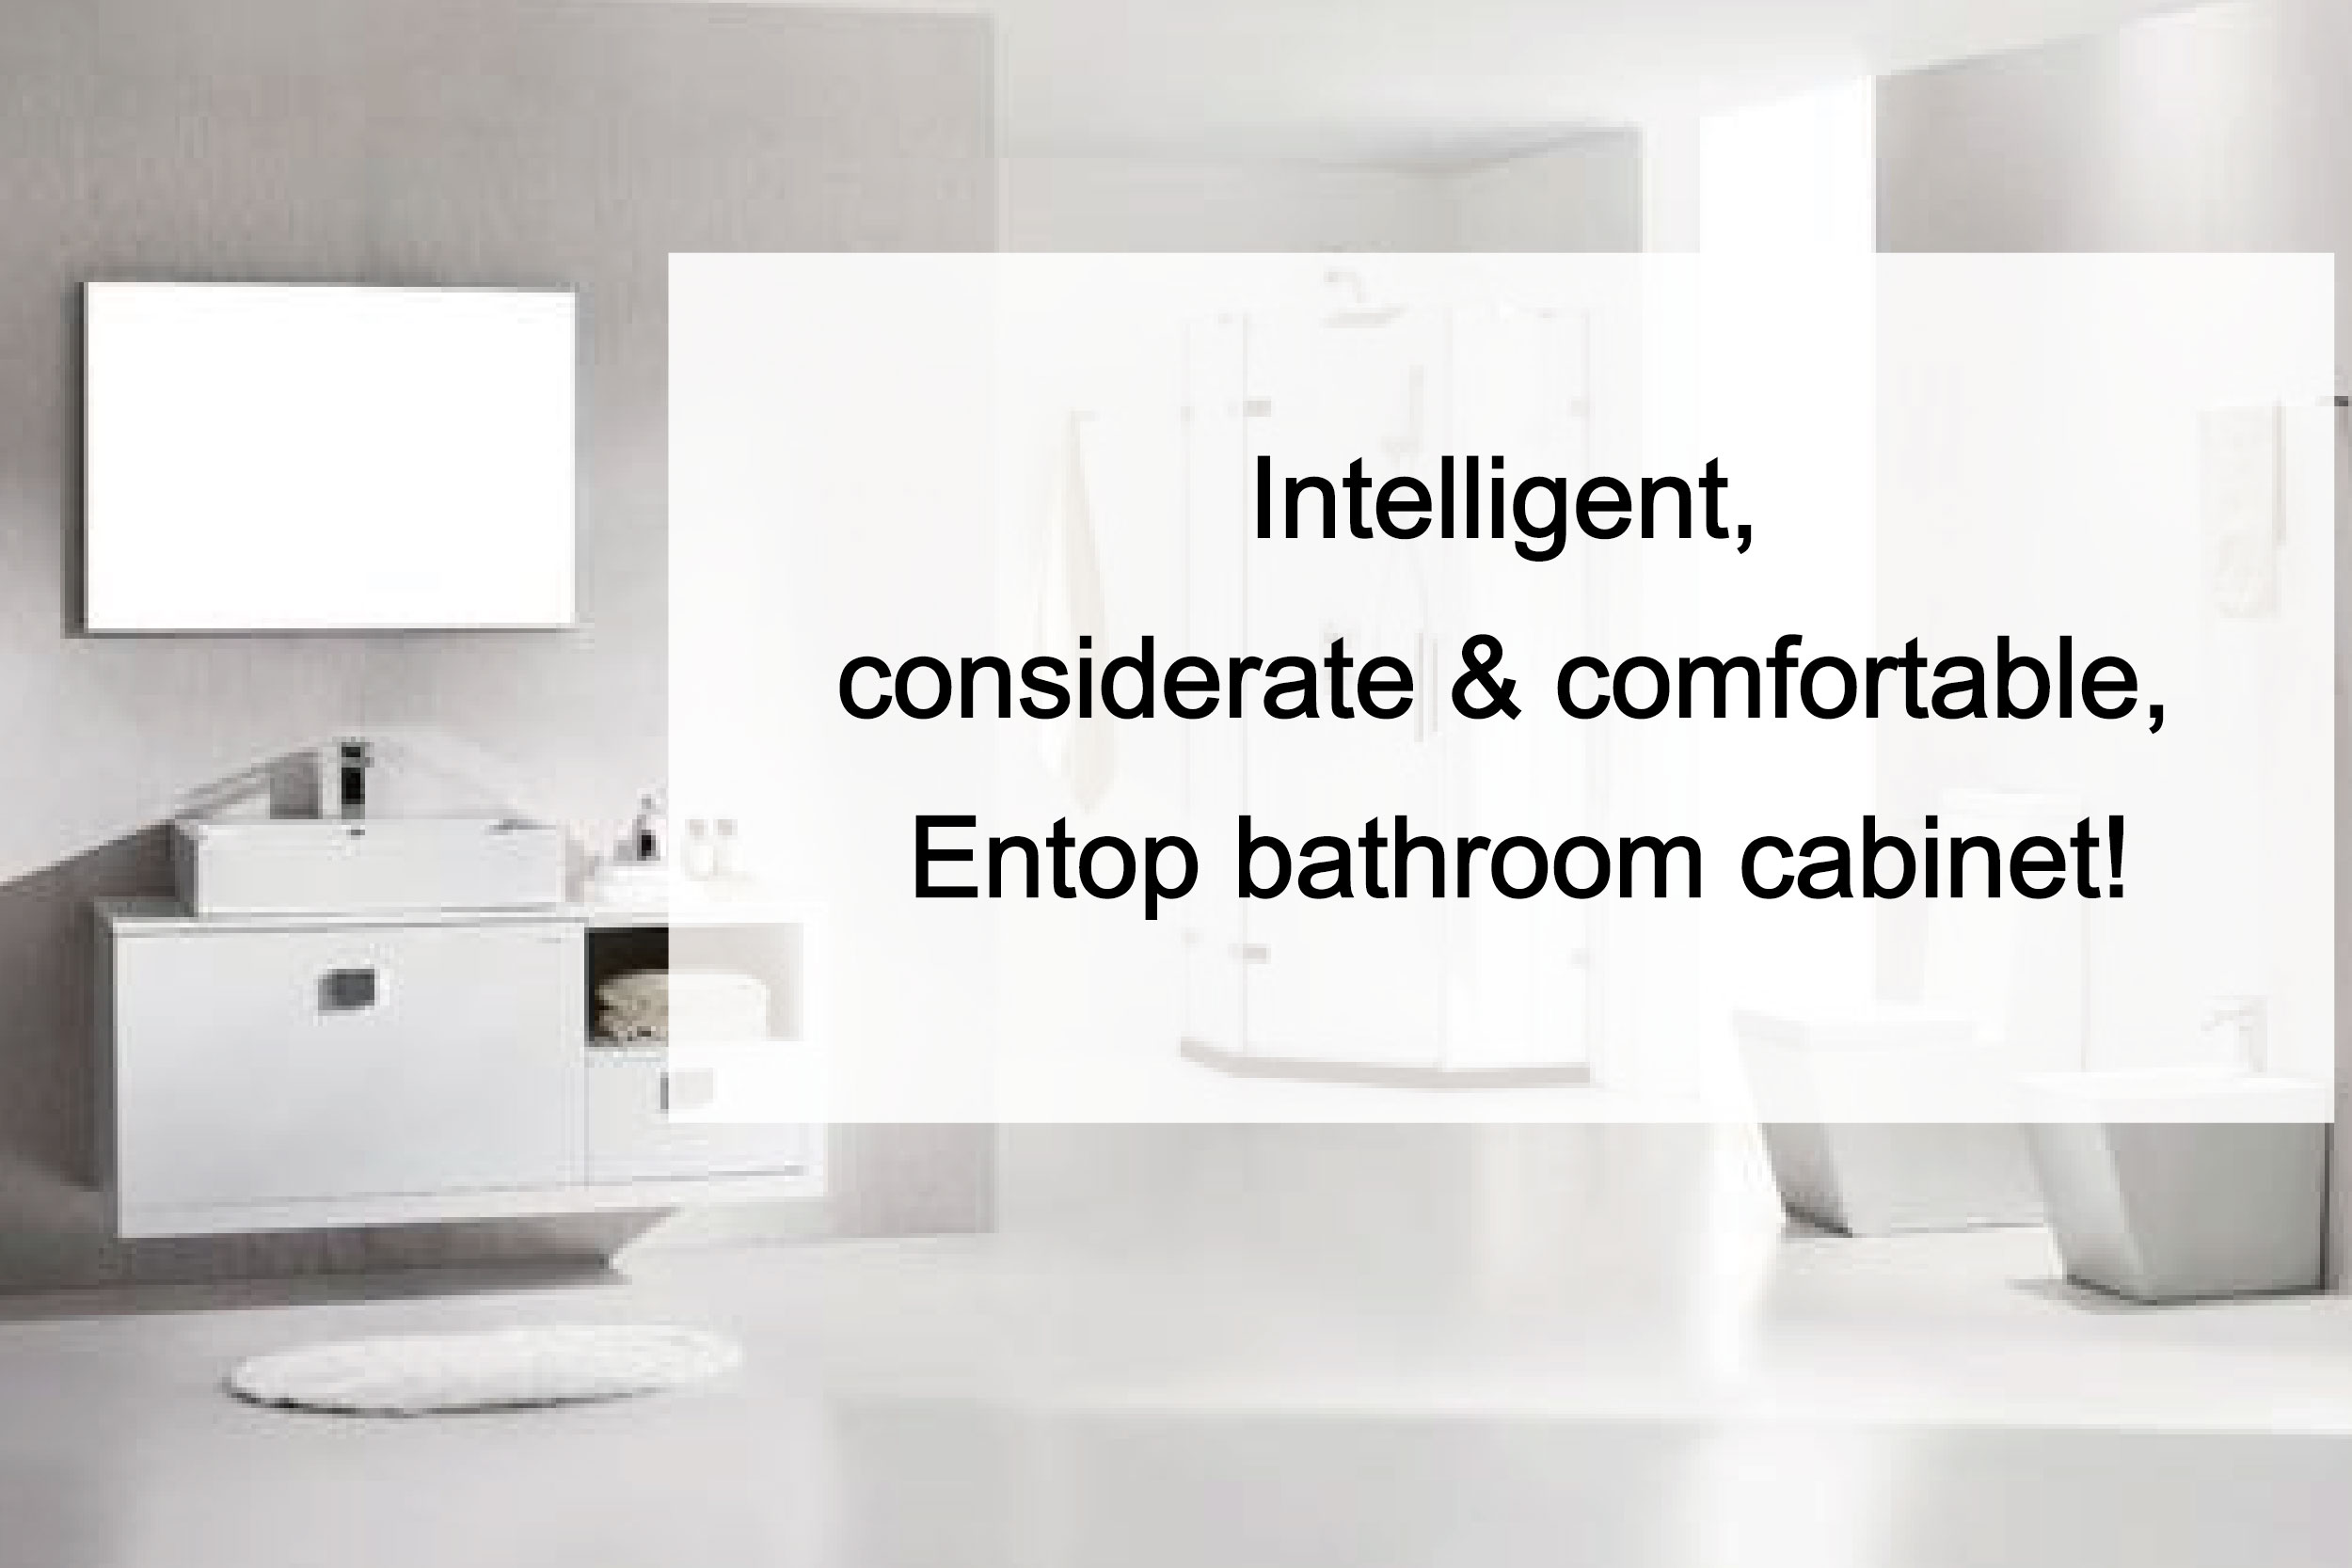 Intelligent, considerate and comfortable, Entop bathroom cabinet!